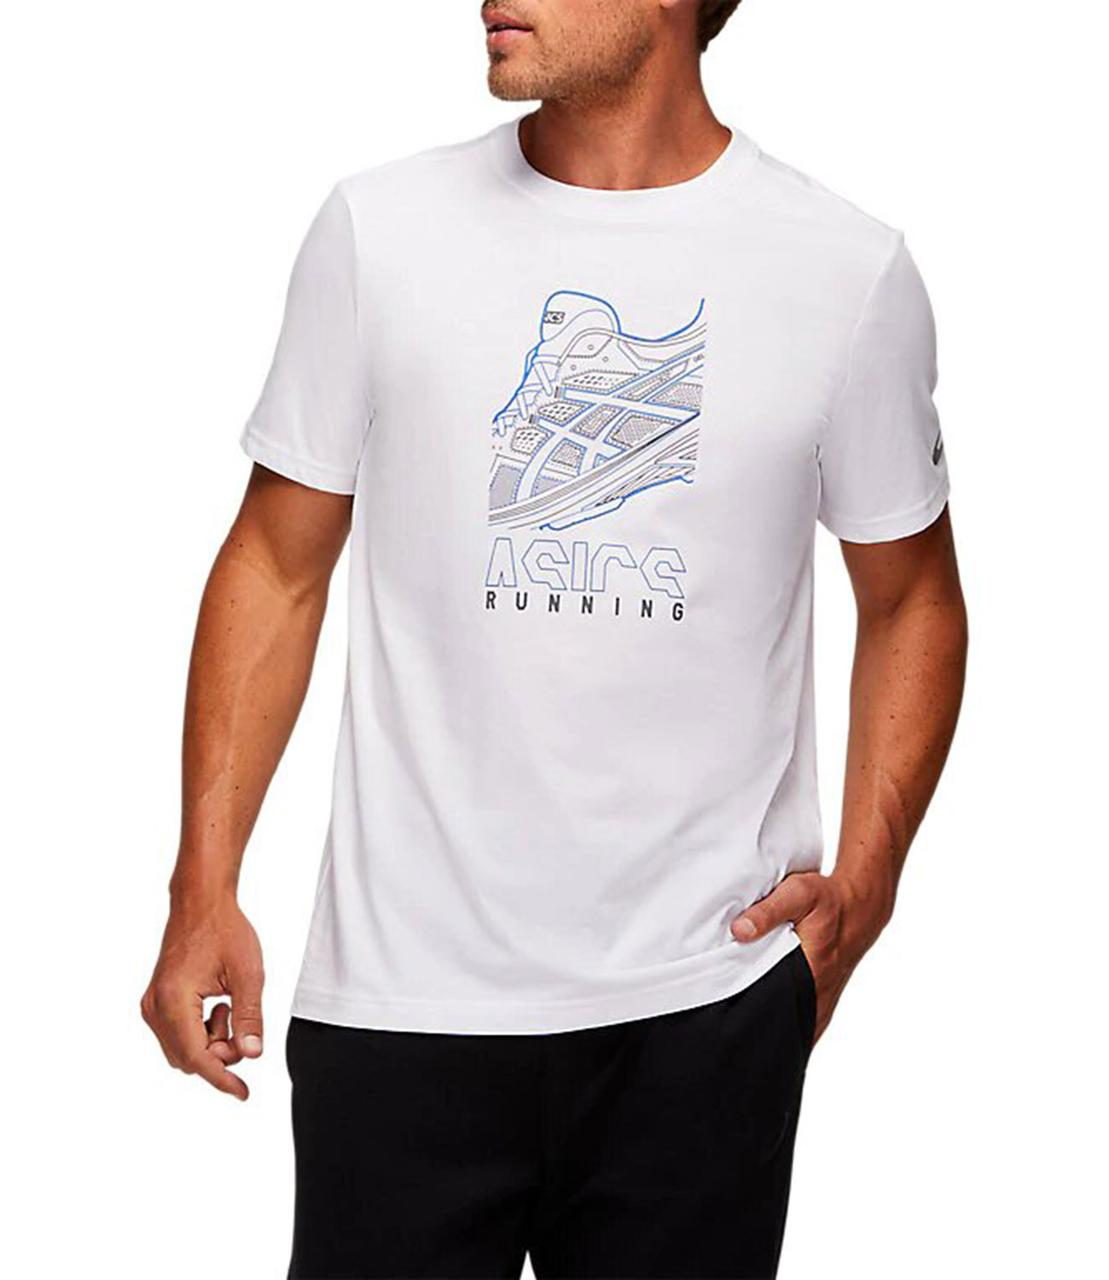 Футболка Asics Running Graphic Tee 2031B353 100